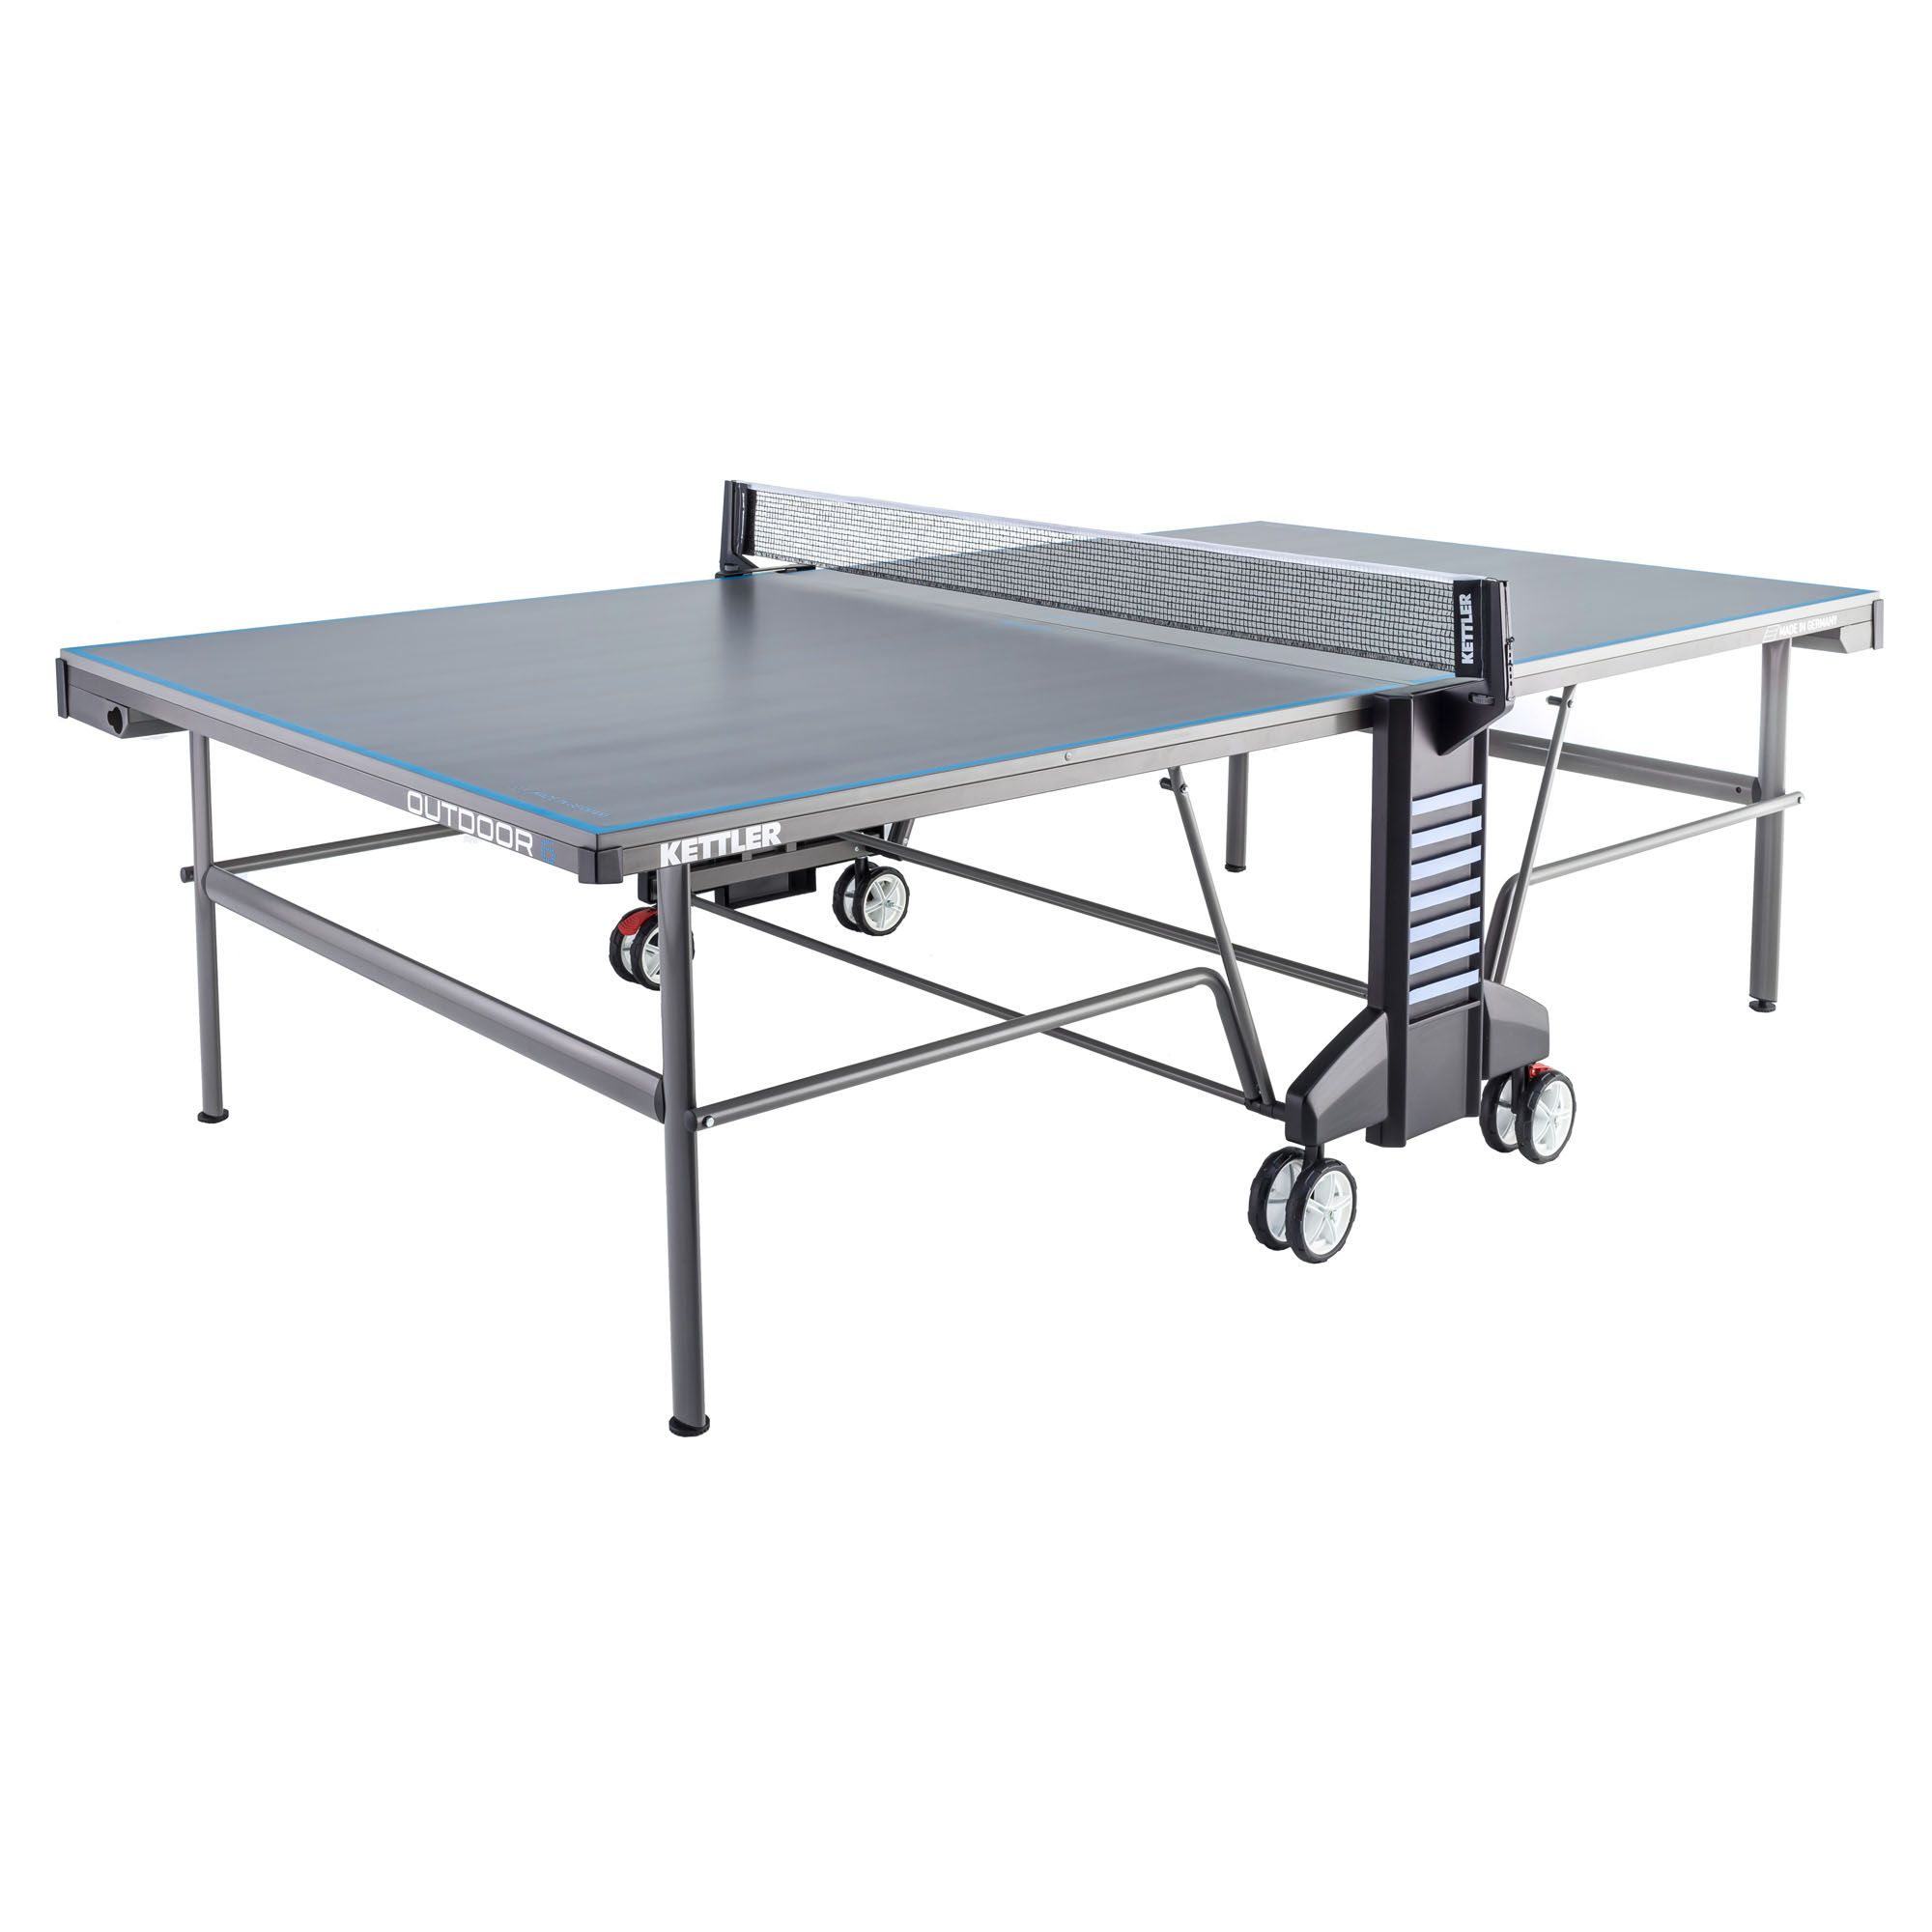 kettler classic outdoor 6 table tennis table. Black Bedroom Furniture Sets. Home Design Ideas